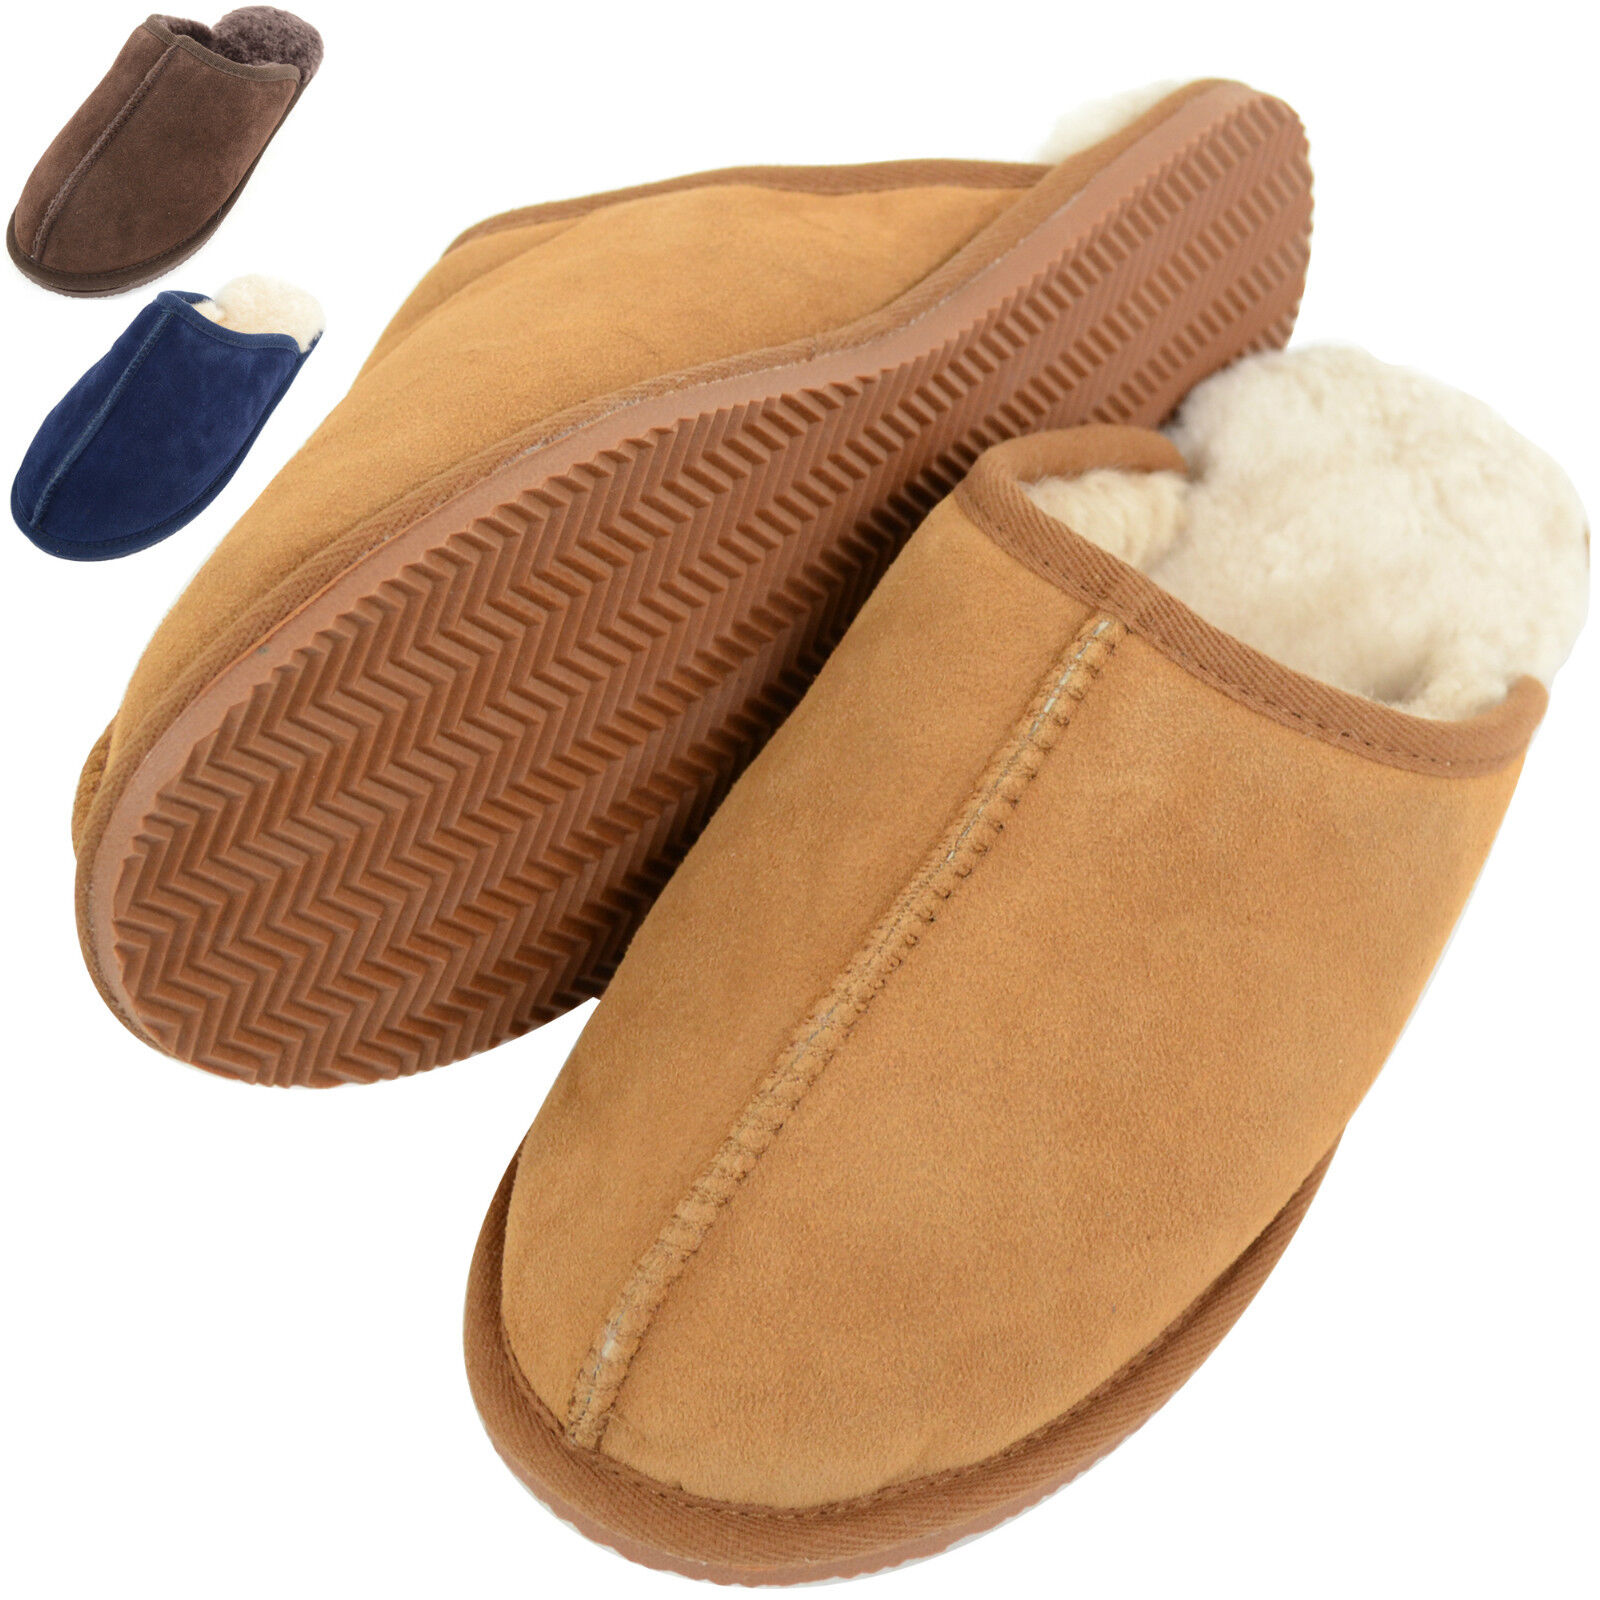 Uomo Sheepskin Mules / Sippers with Man Made Sole